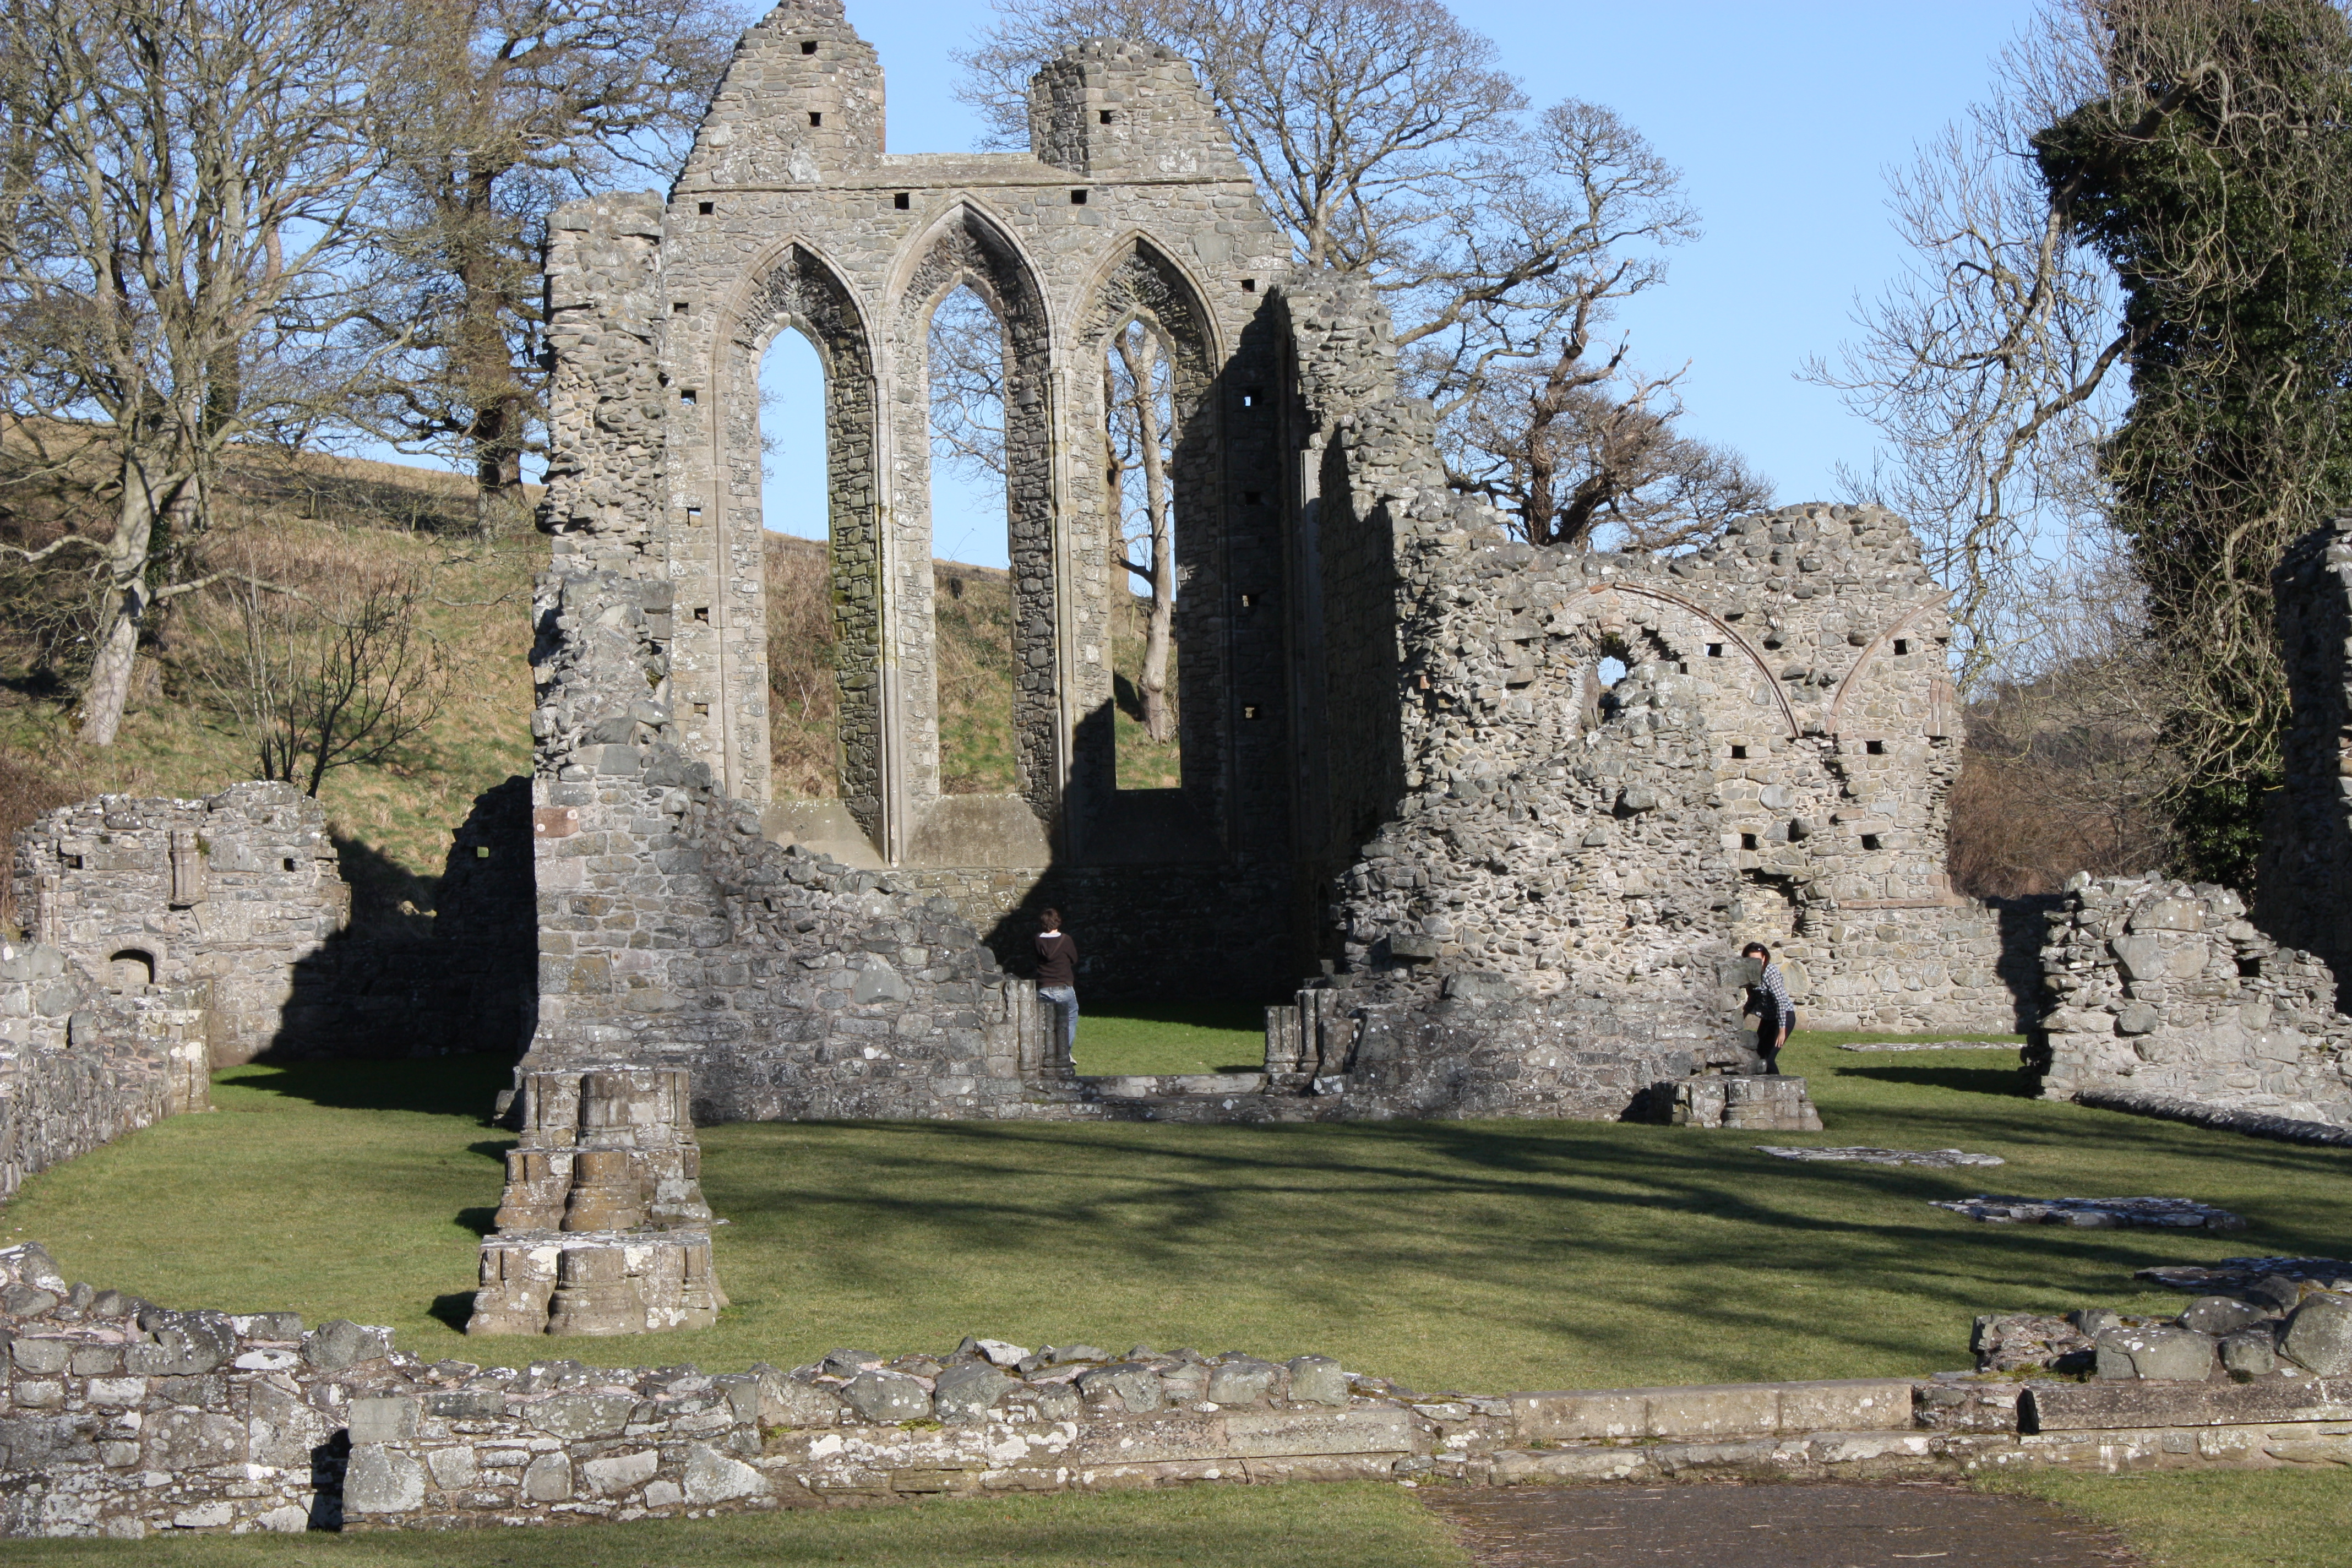 The Arch of Inch Abbey